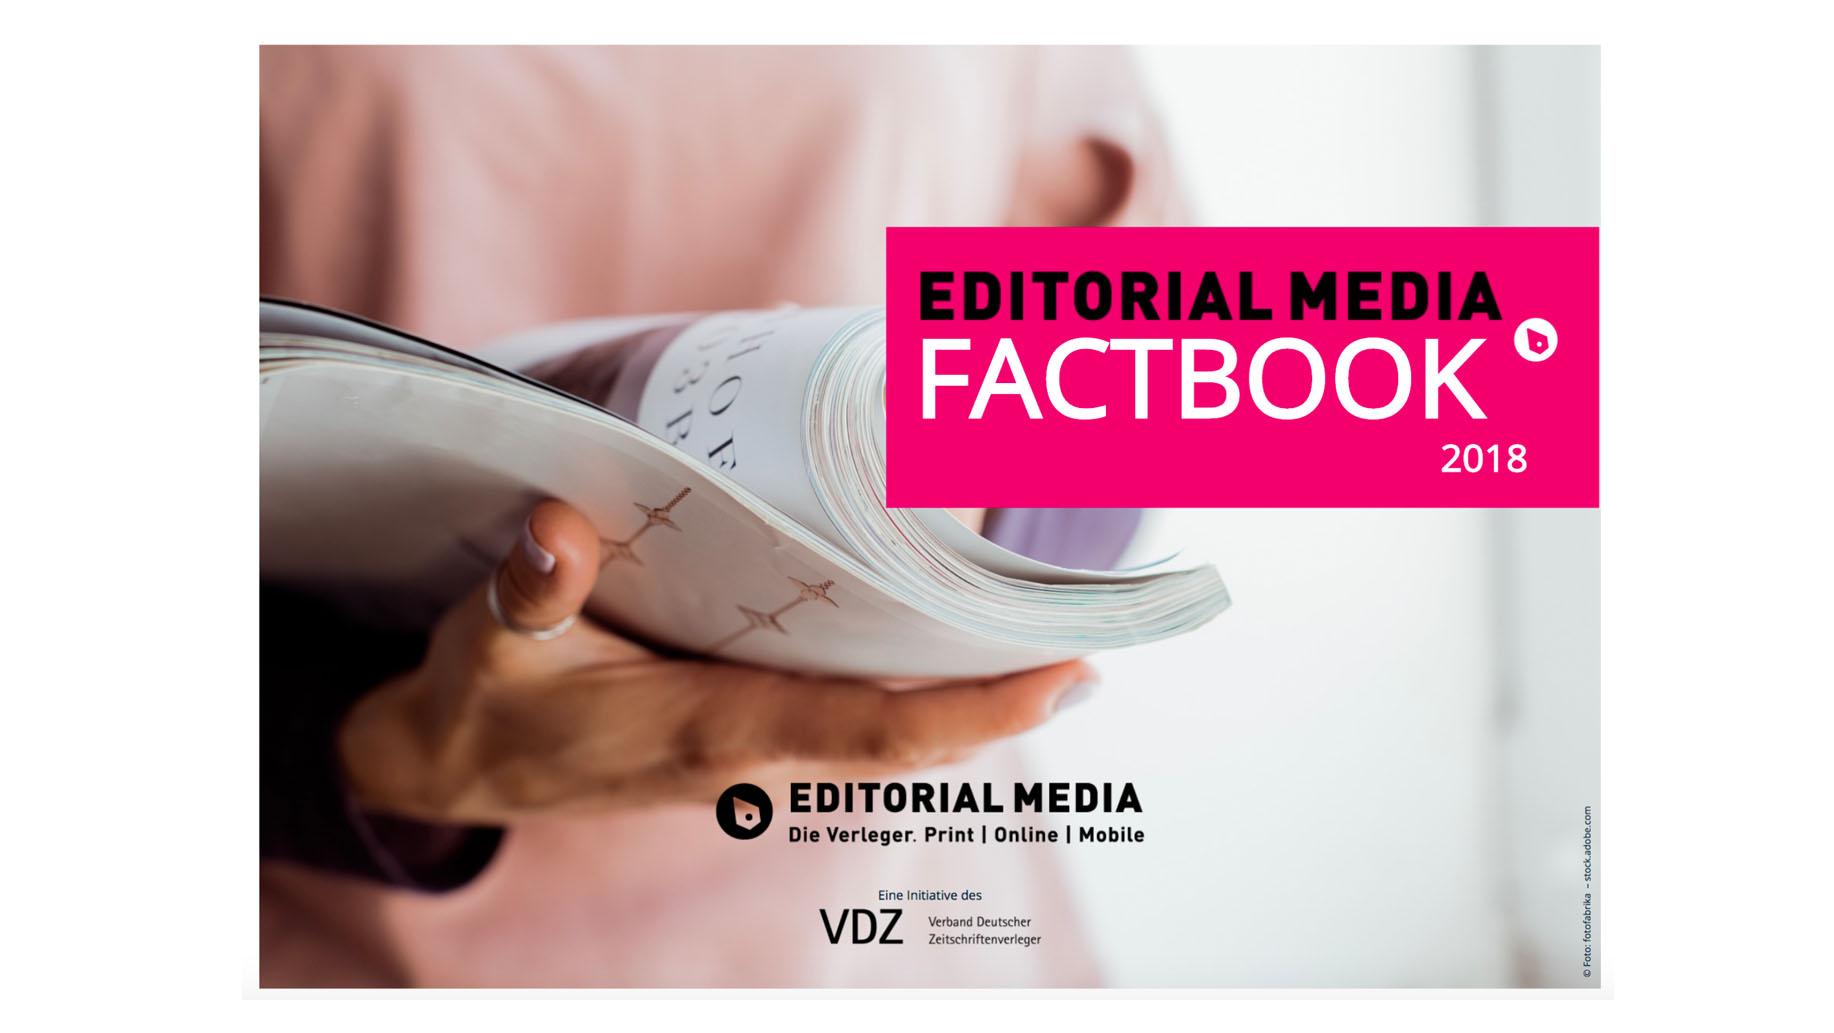 factbook-editorial-media-2018-1